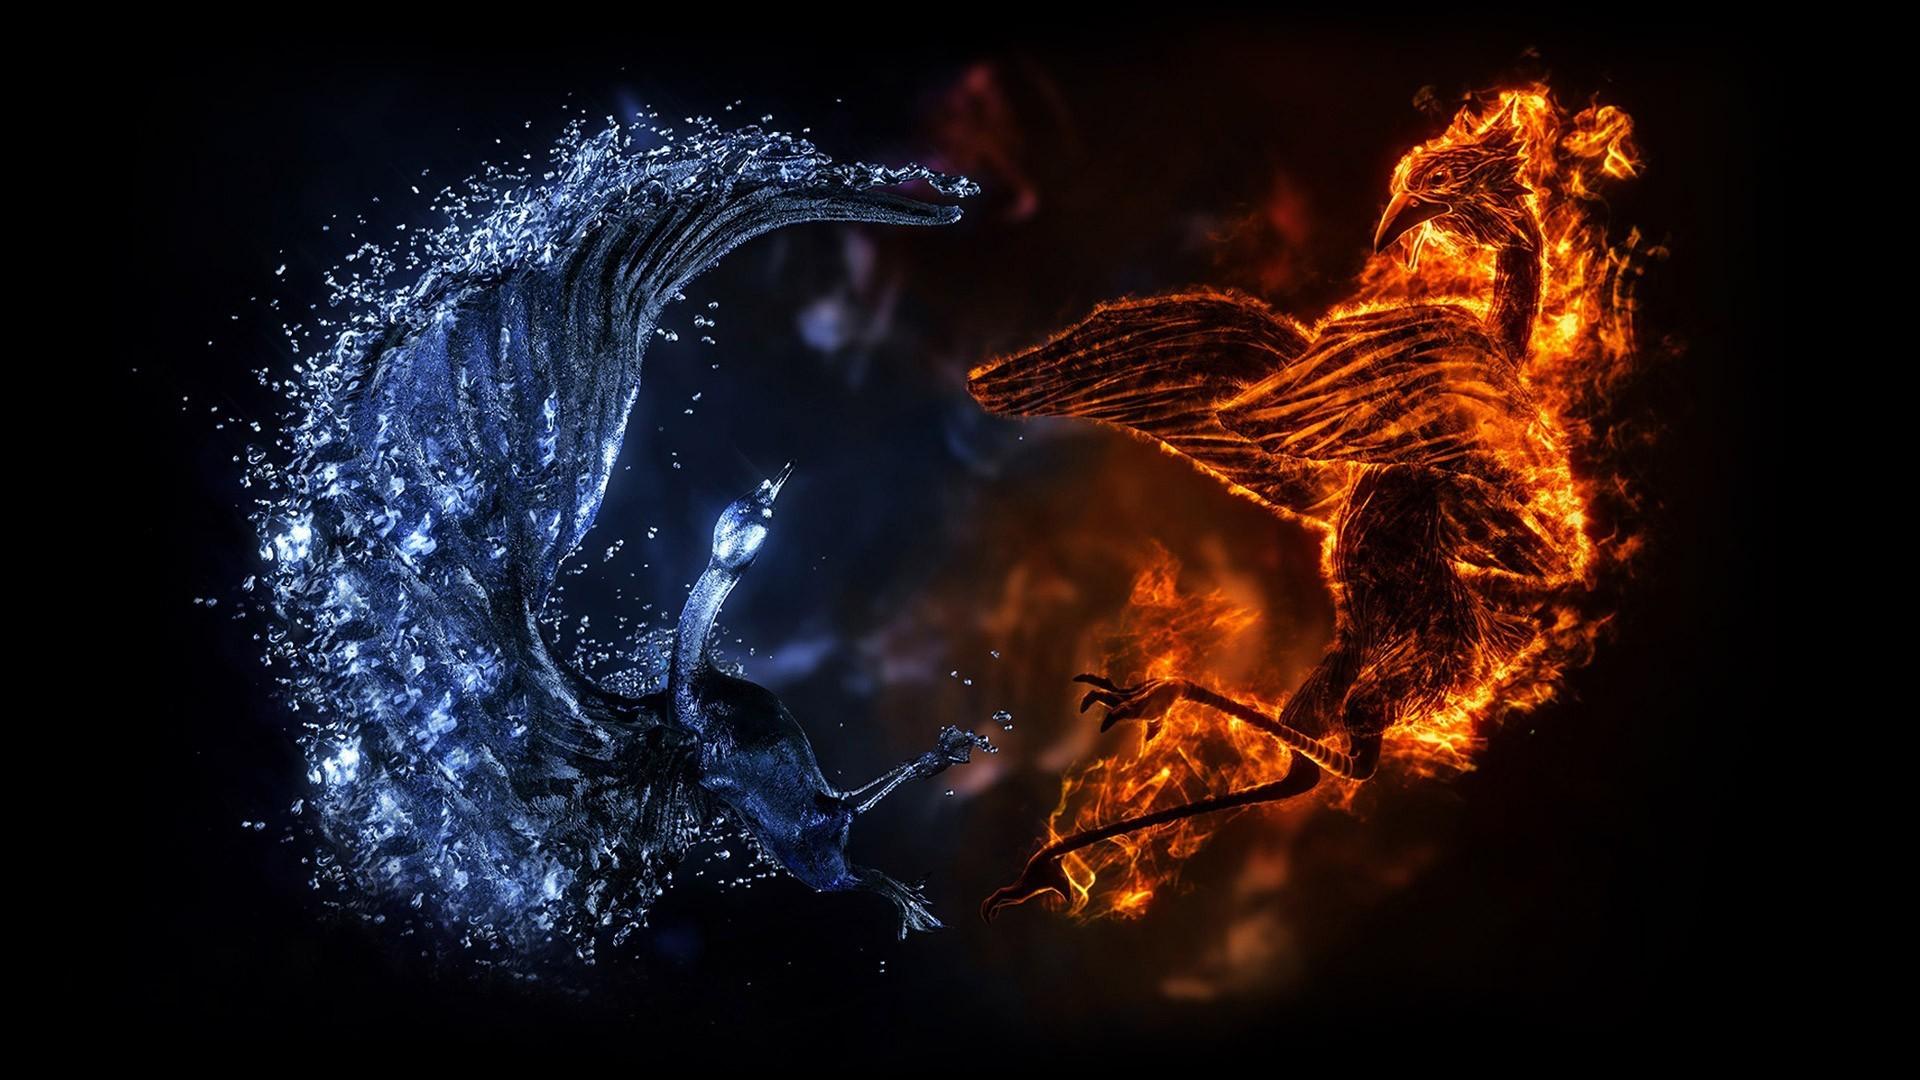 Battle of fire and water dragons wallpapers and images .